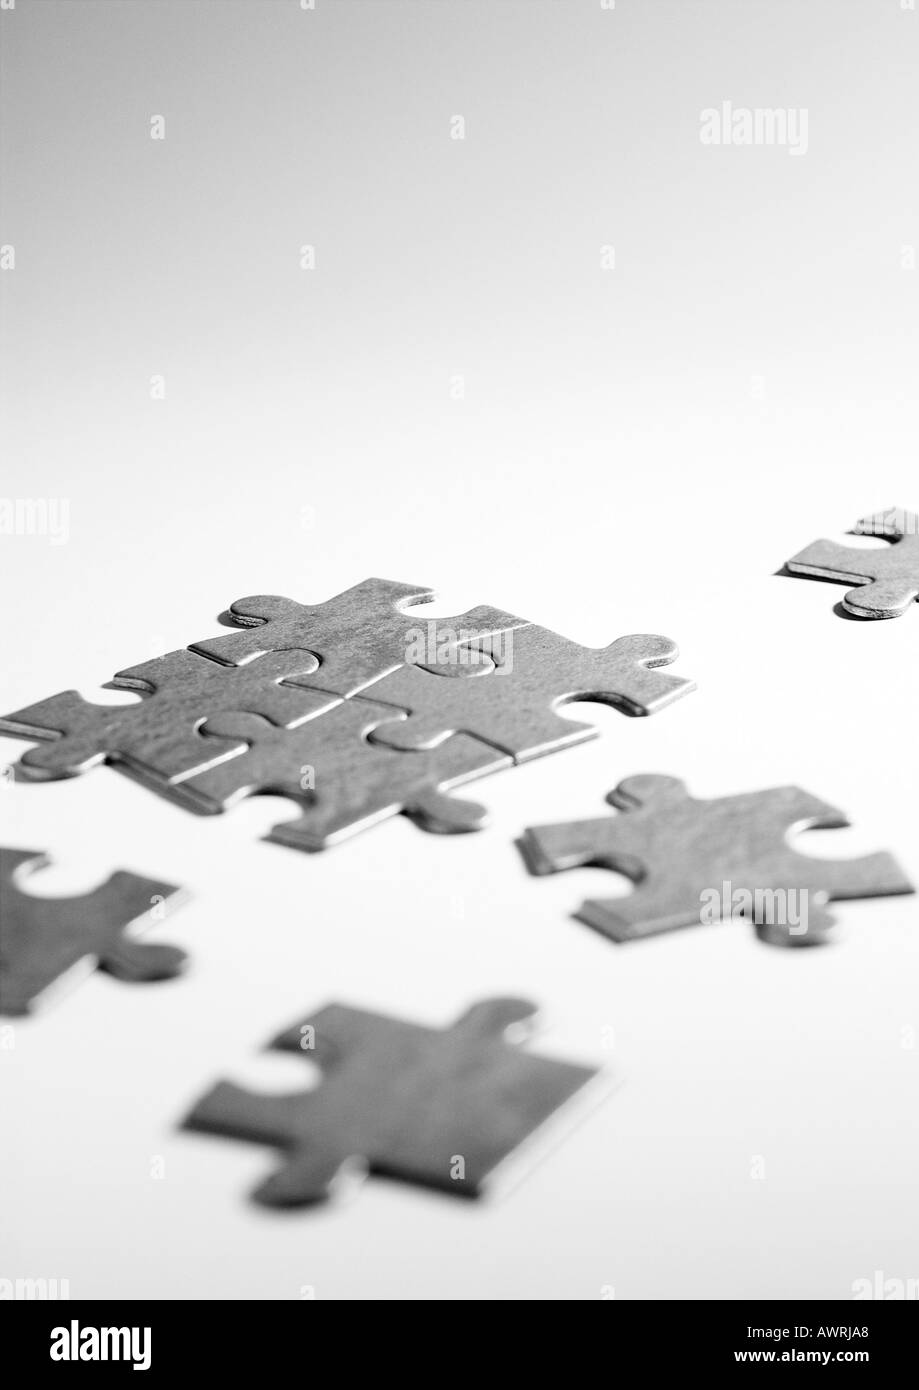 Pieces of puzzle - Stock Image